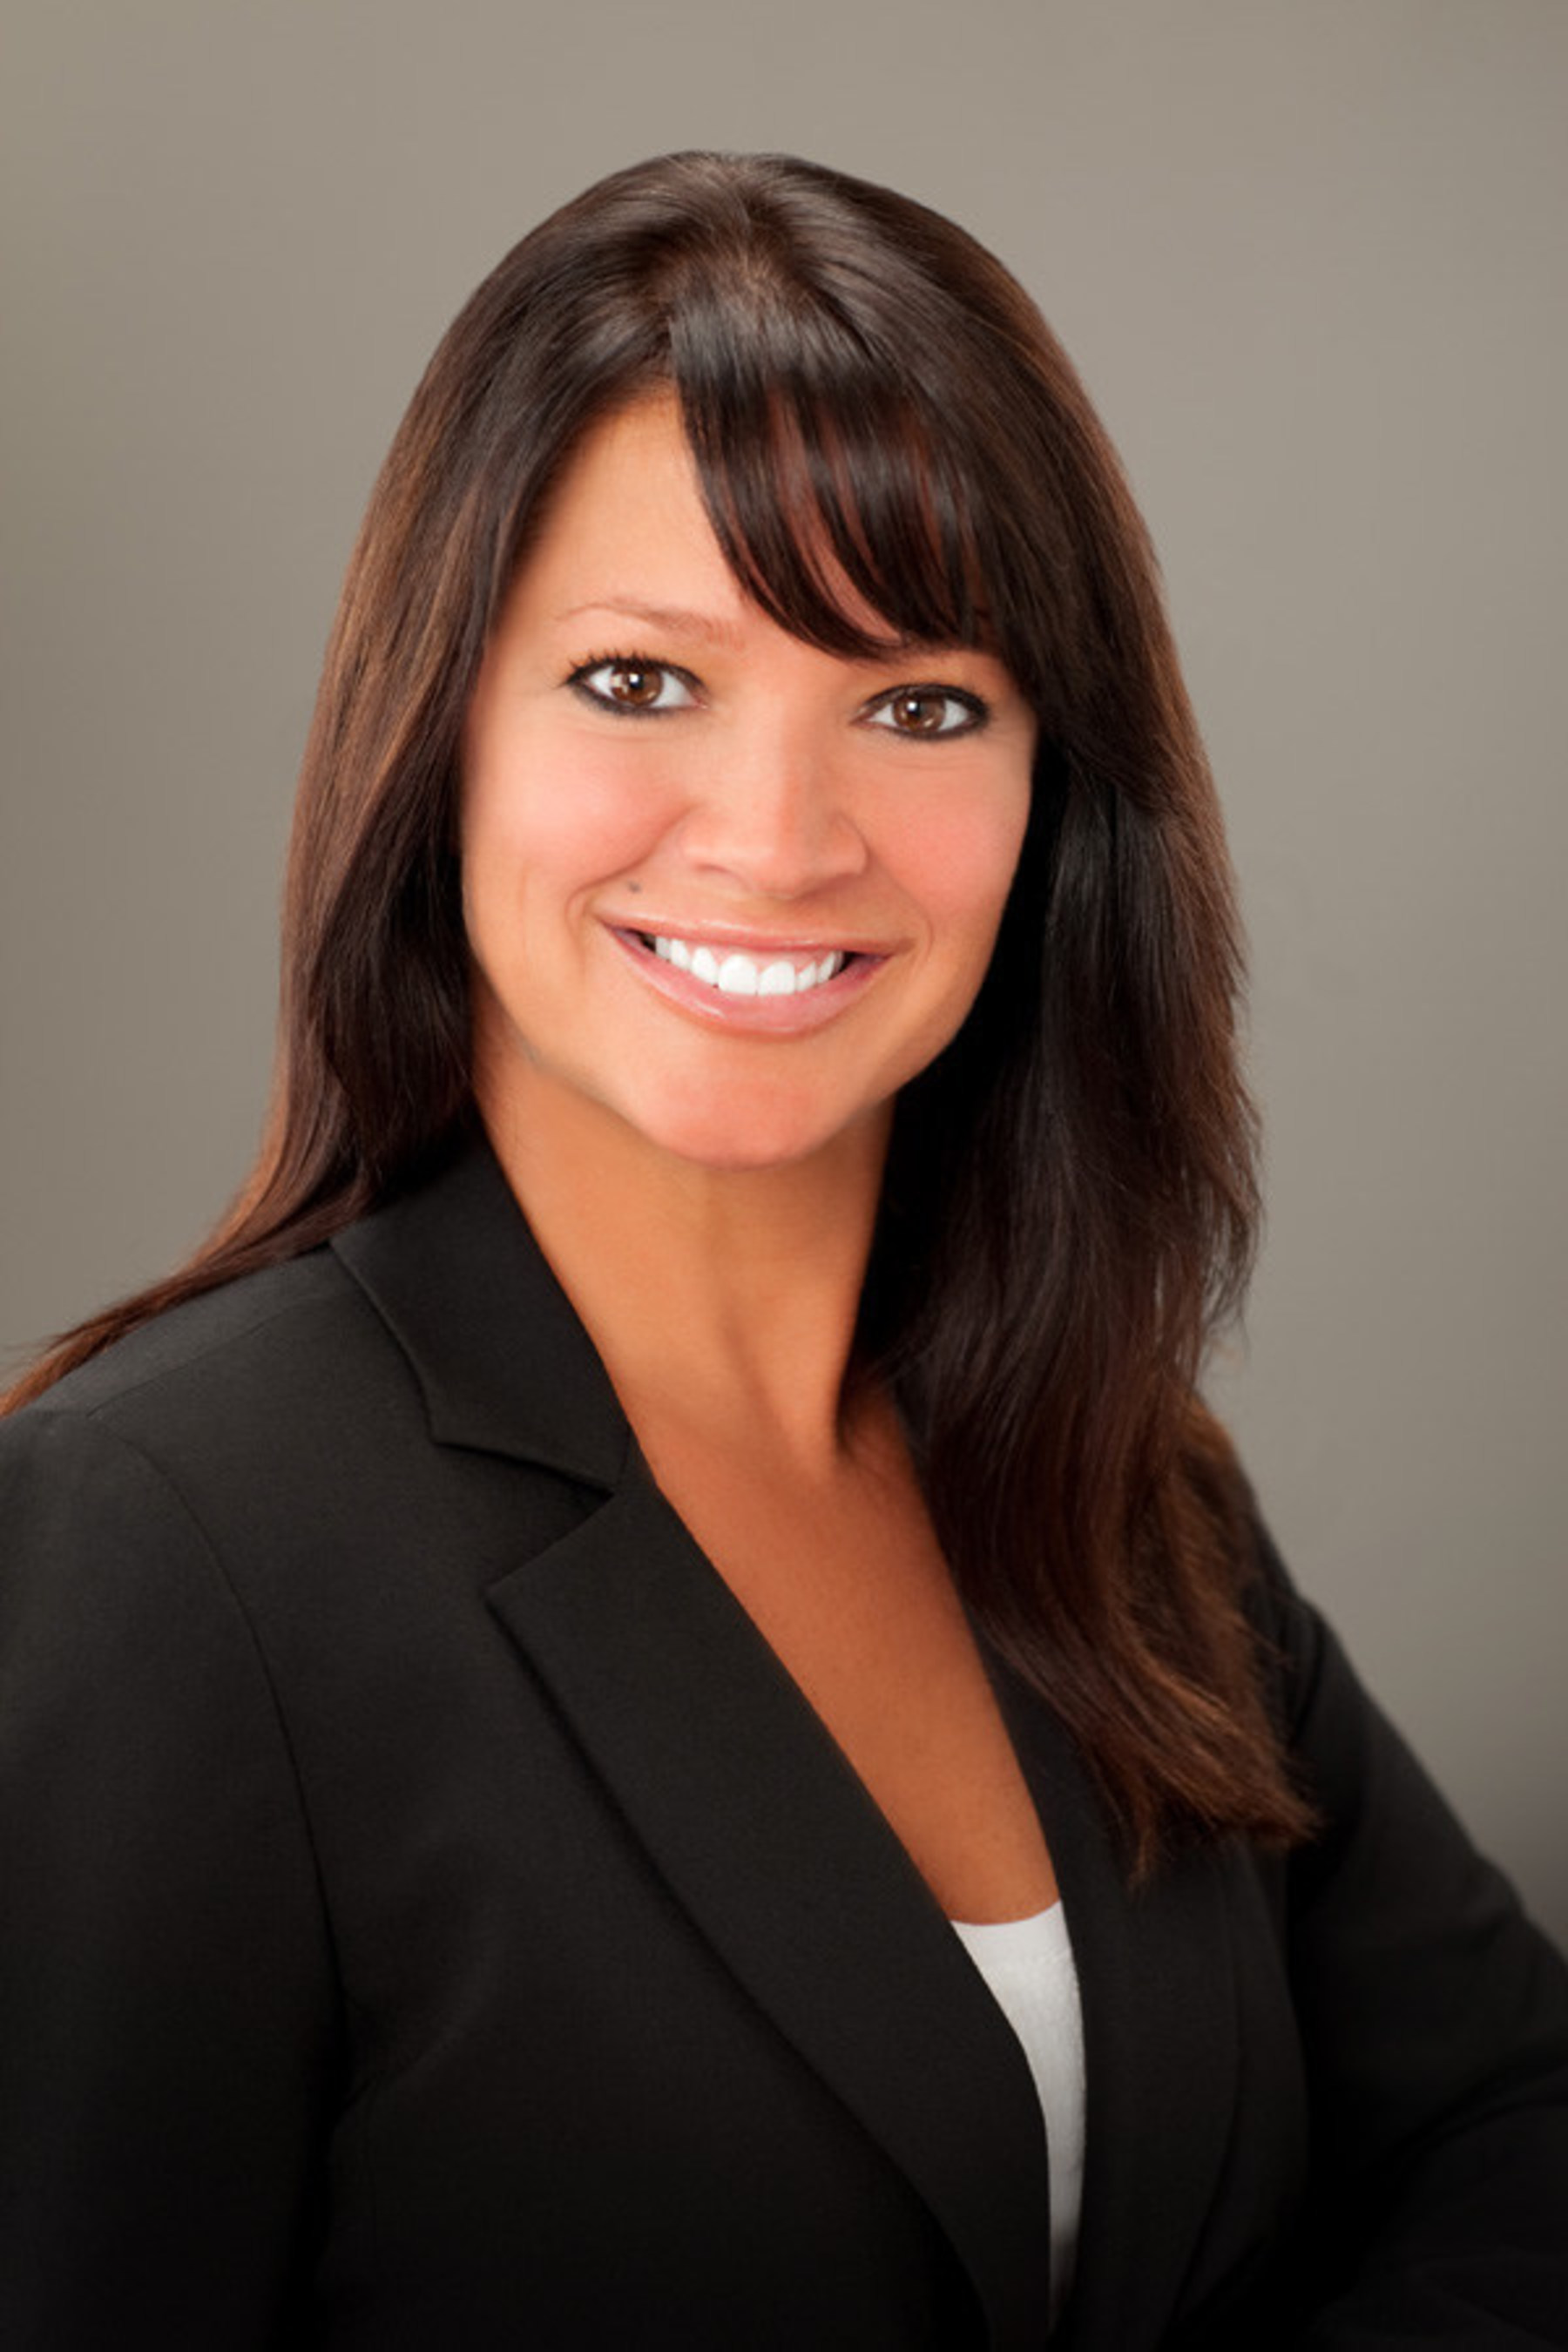 Marchelle Cook is recognized by Continental Who's Who as a Pinnacle Professional